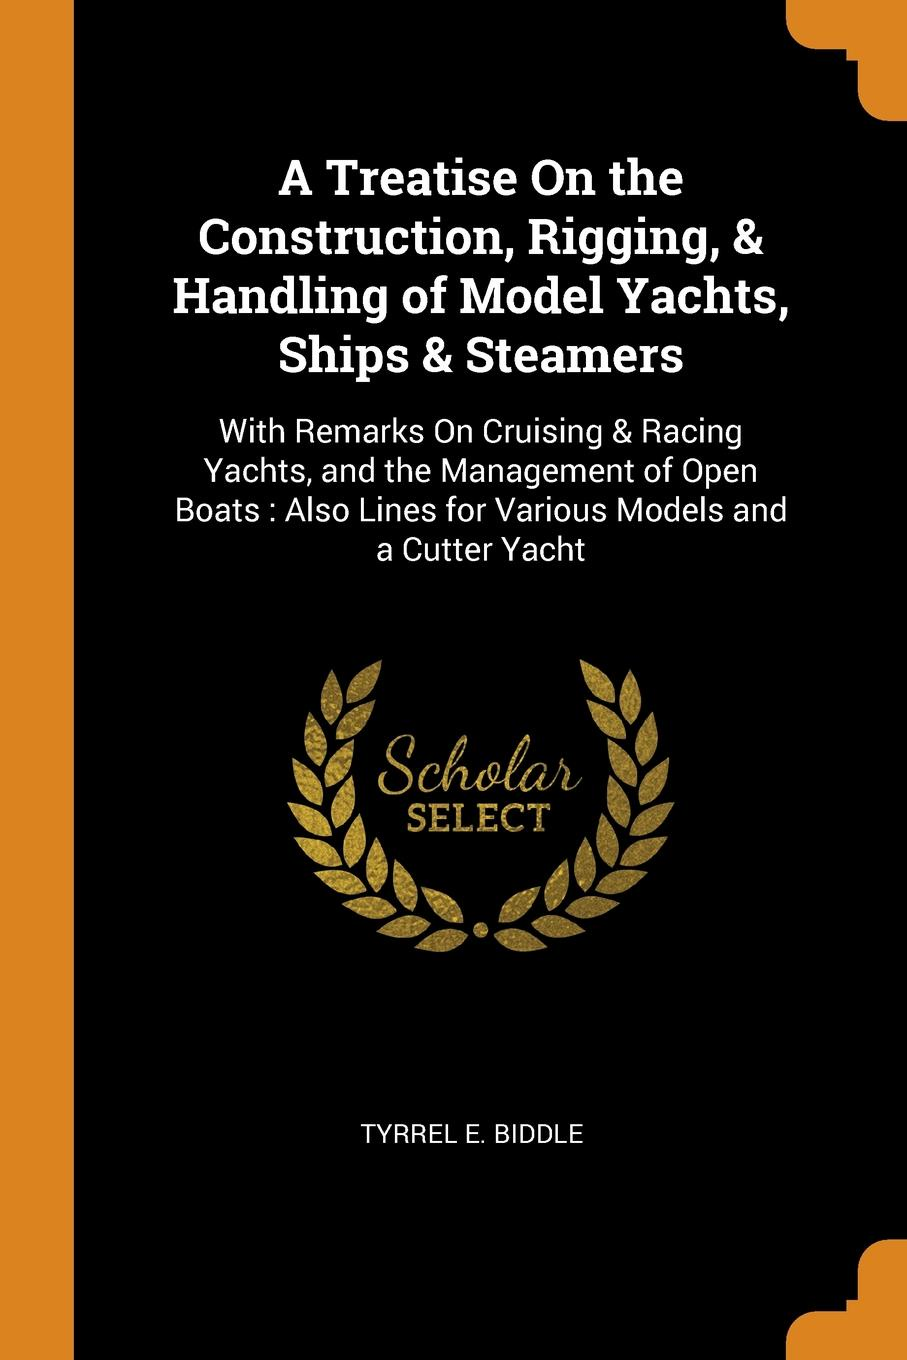 Tyrrel E. Biddle. A Treatise On the Construction, Rigging, . Handling of Model Yachts, Ships . Steamers. With Remarks On Cruising . Racing Yachts, and the Management of Open Boats : Also Lines for Various Models and a Cutter Yacht